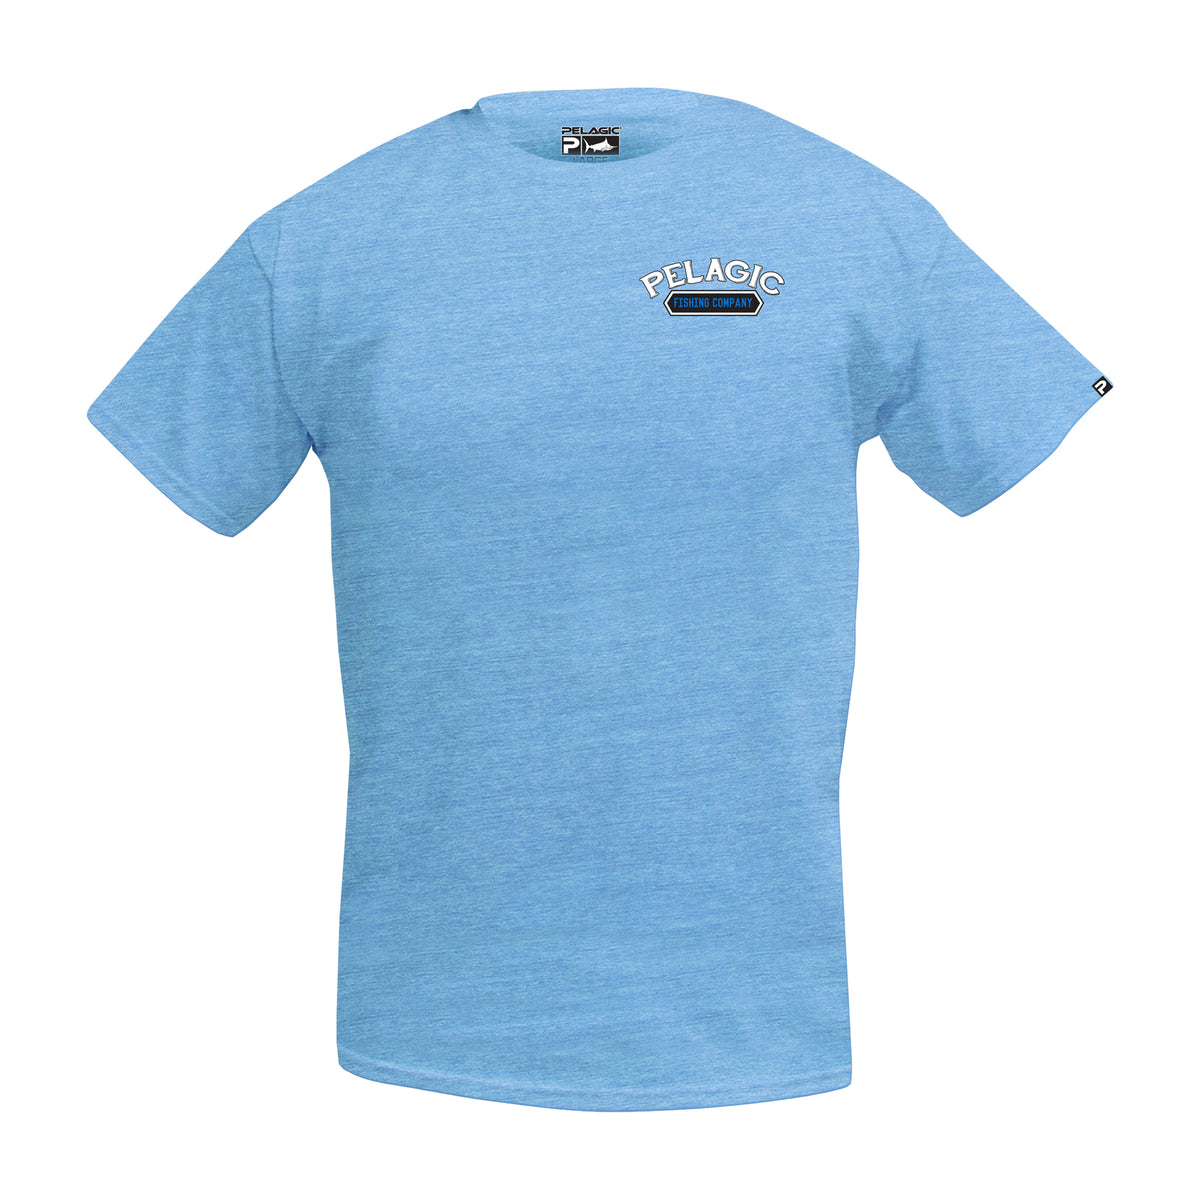 Marlin Company Fishing T-shirt Big Image - 2